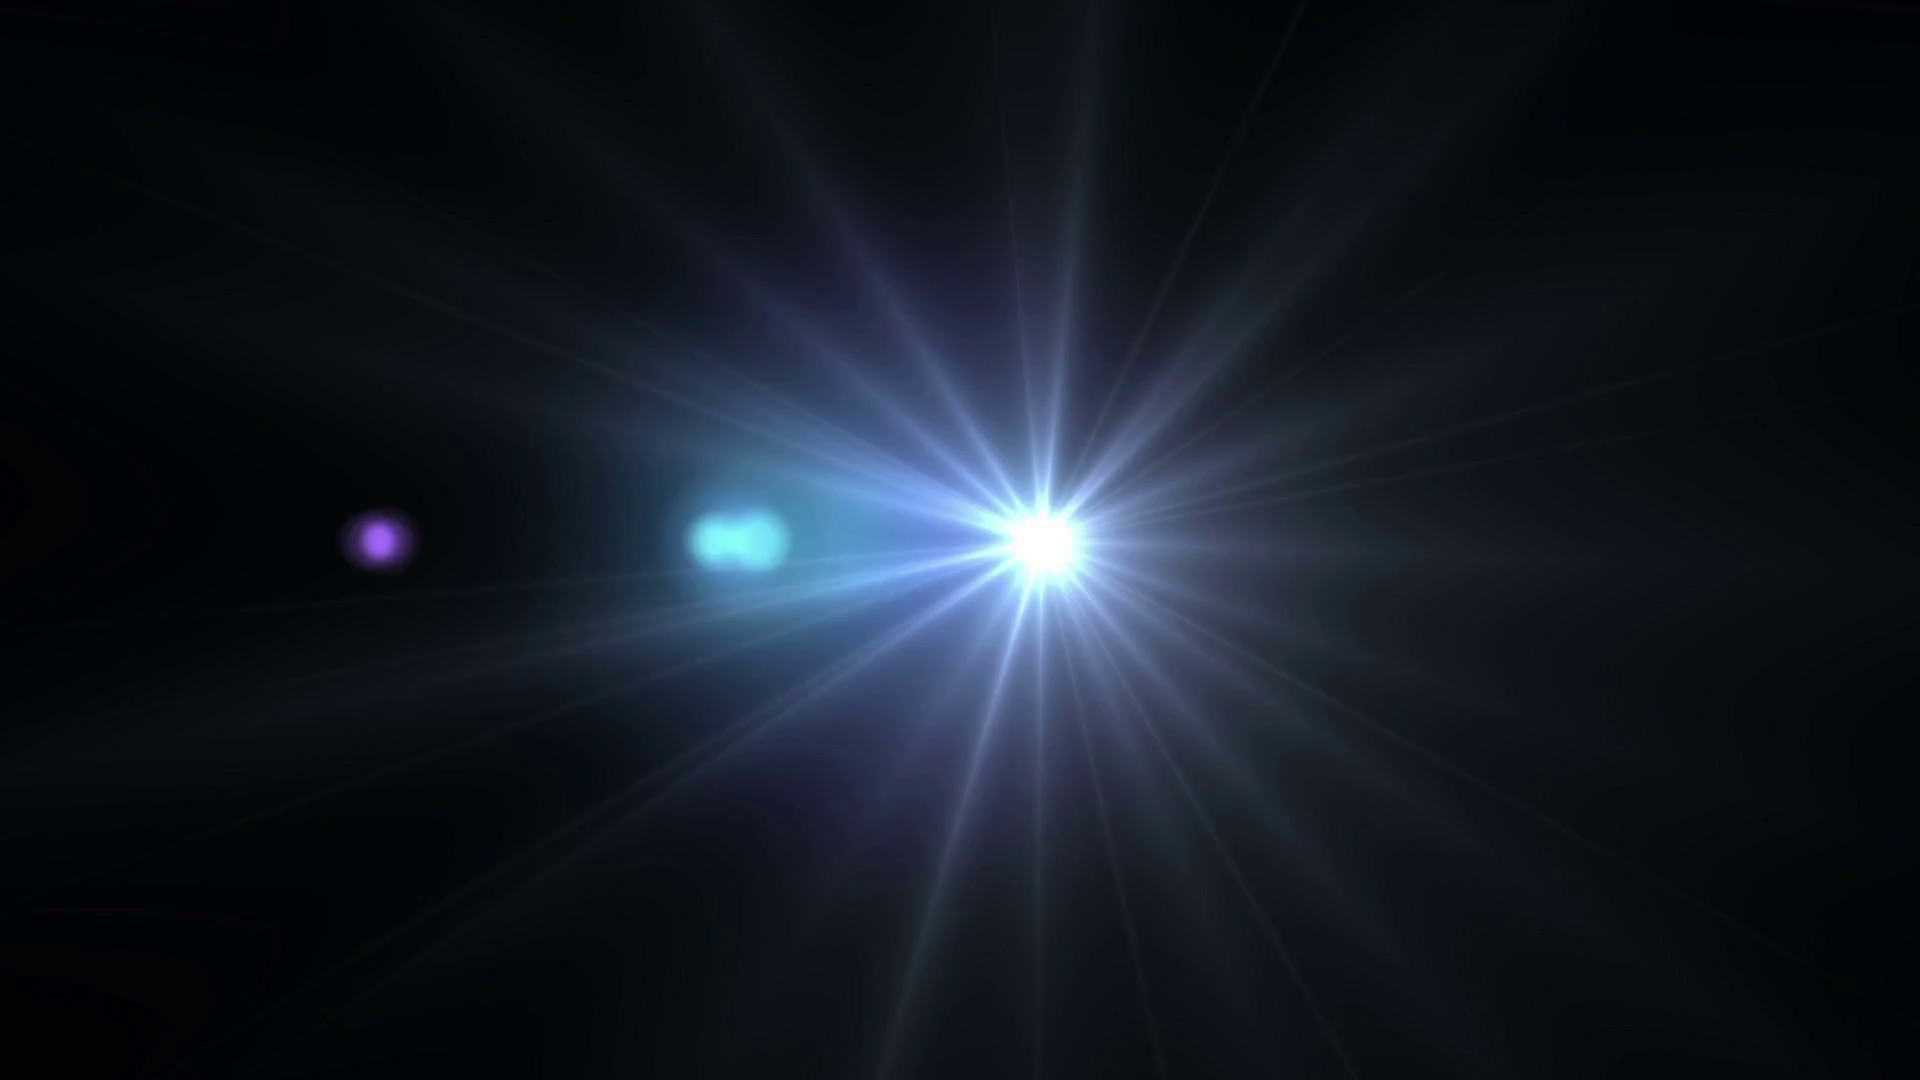 Light flare png flash. Theme in black background